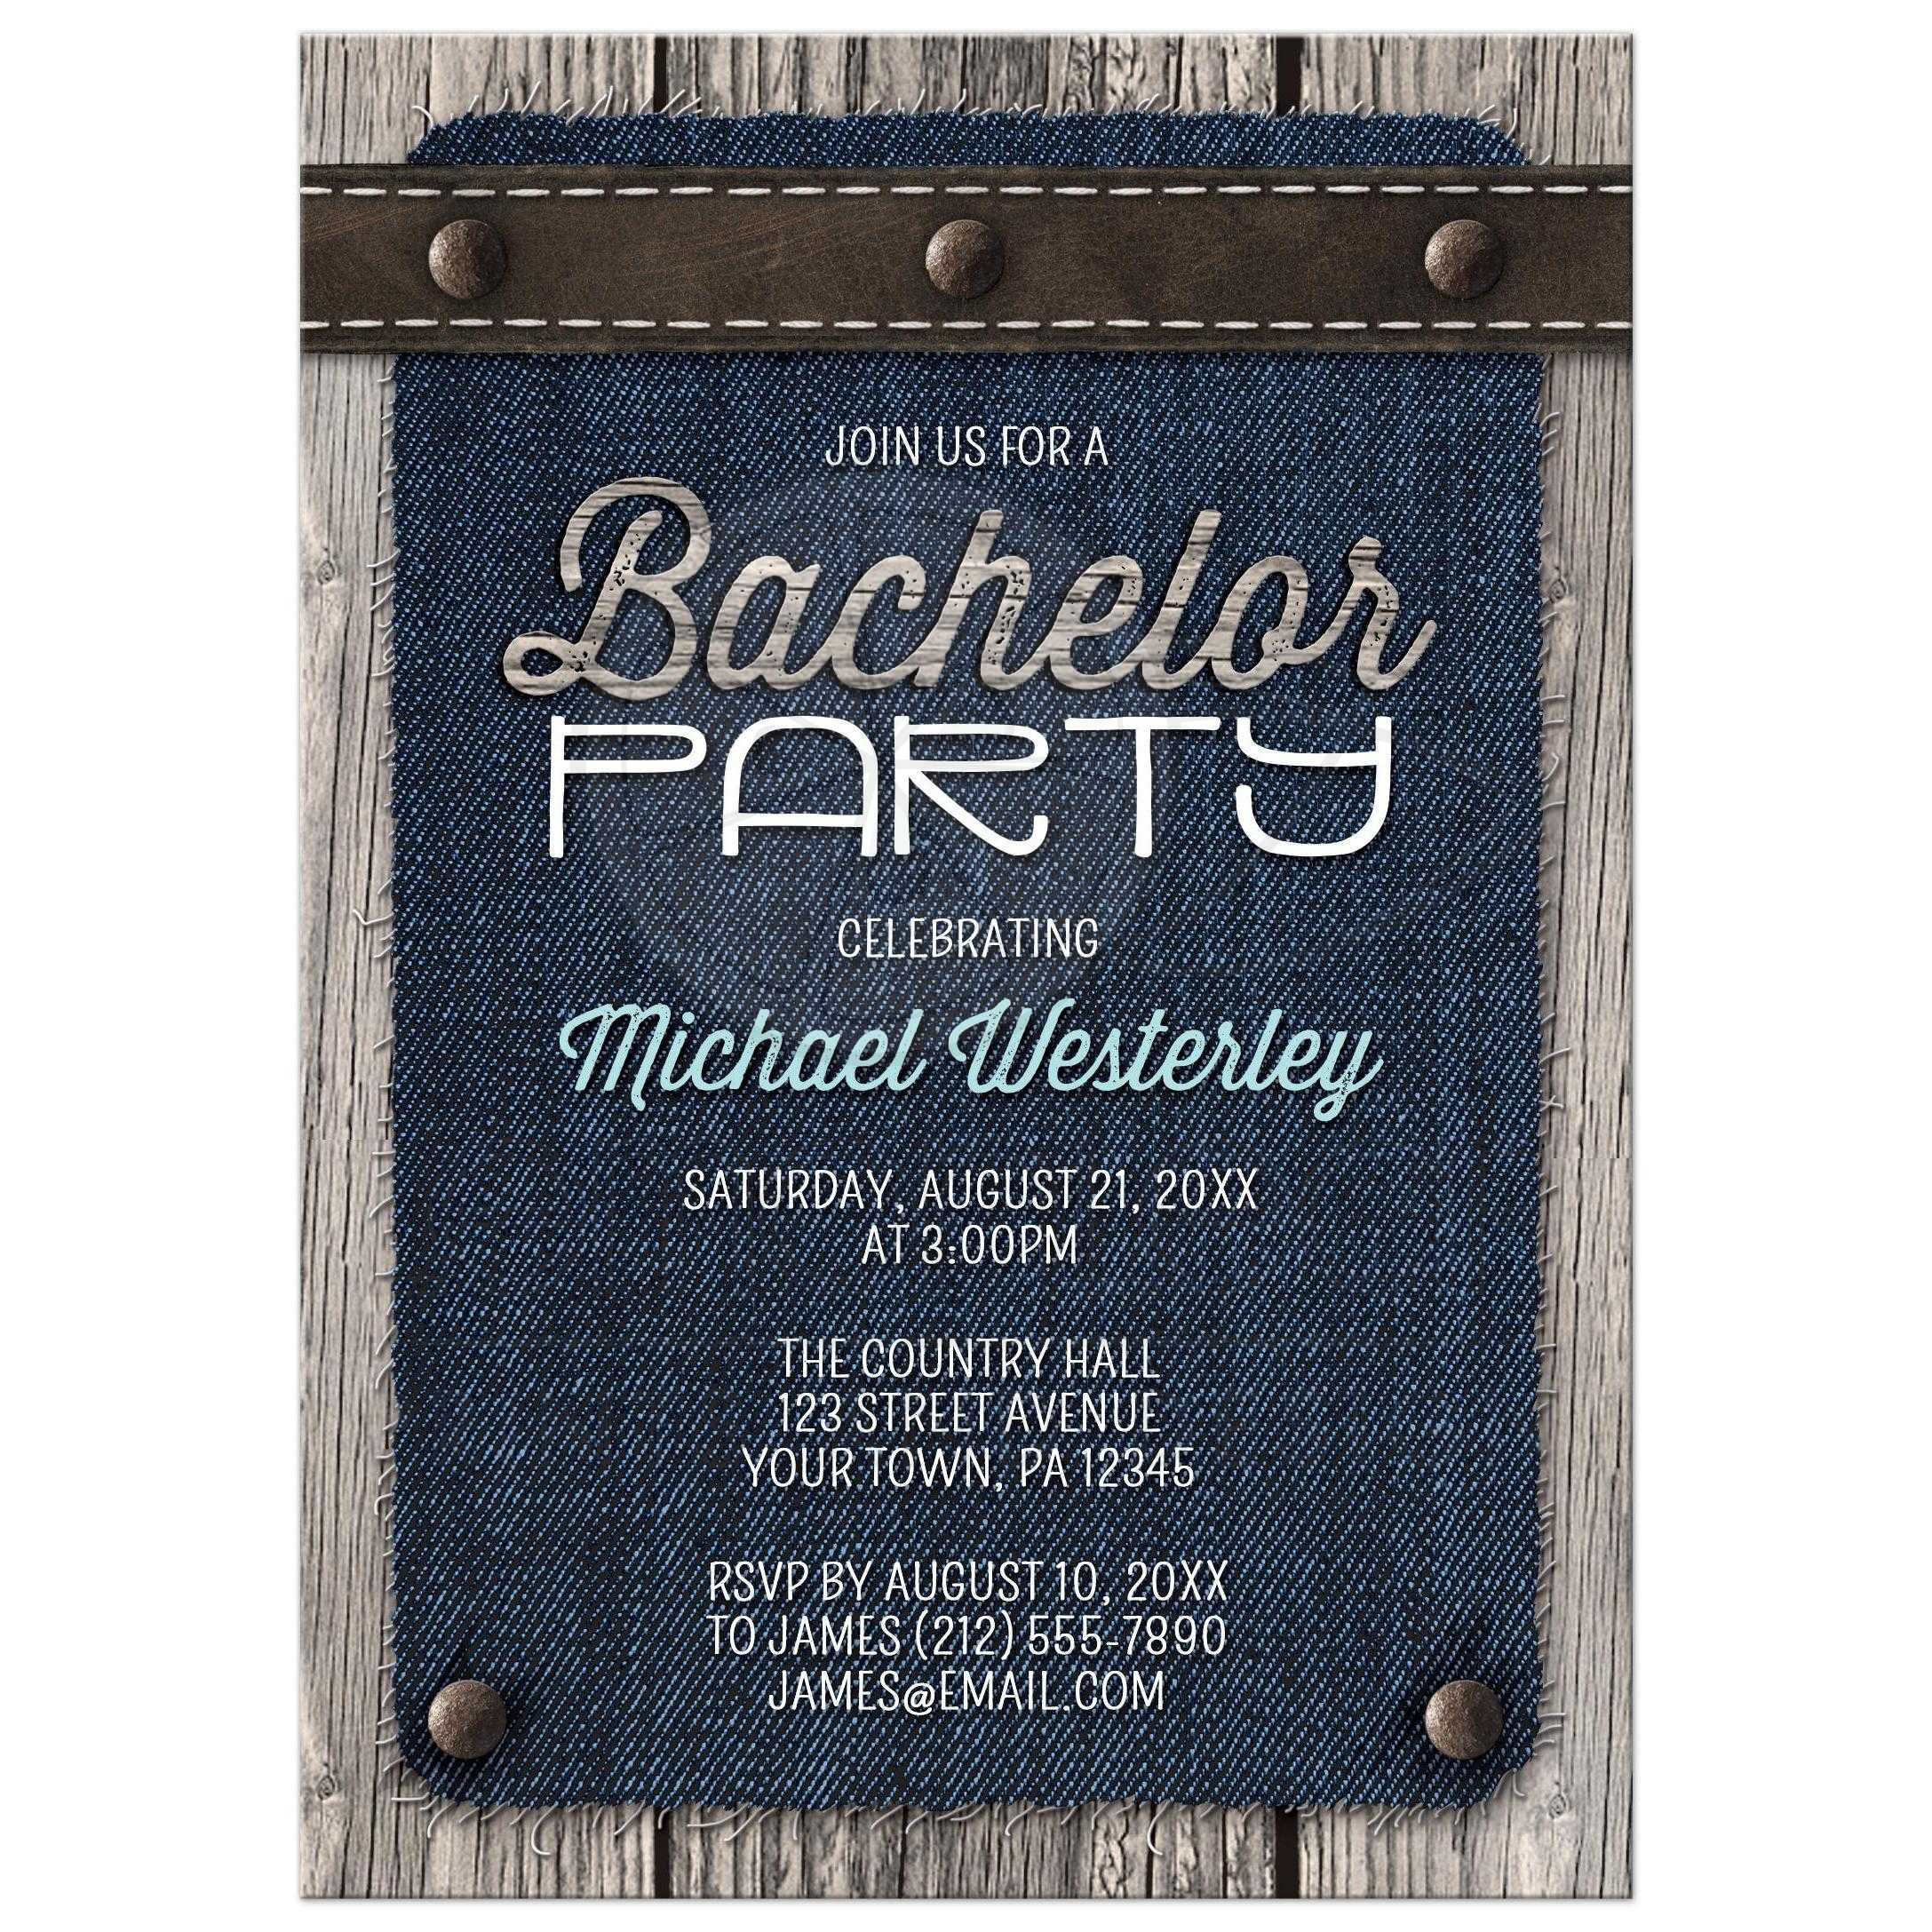 Business Grand Opening Invitation Wording was great invitations layout